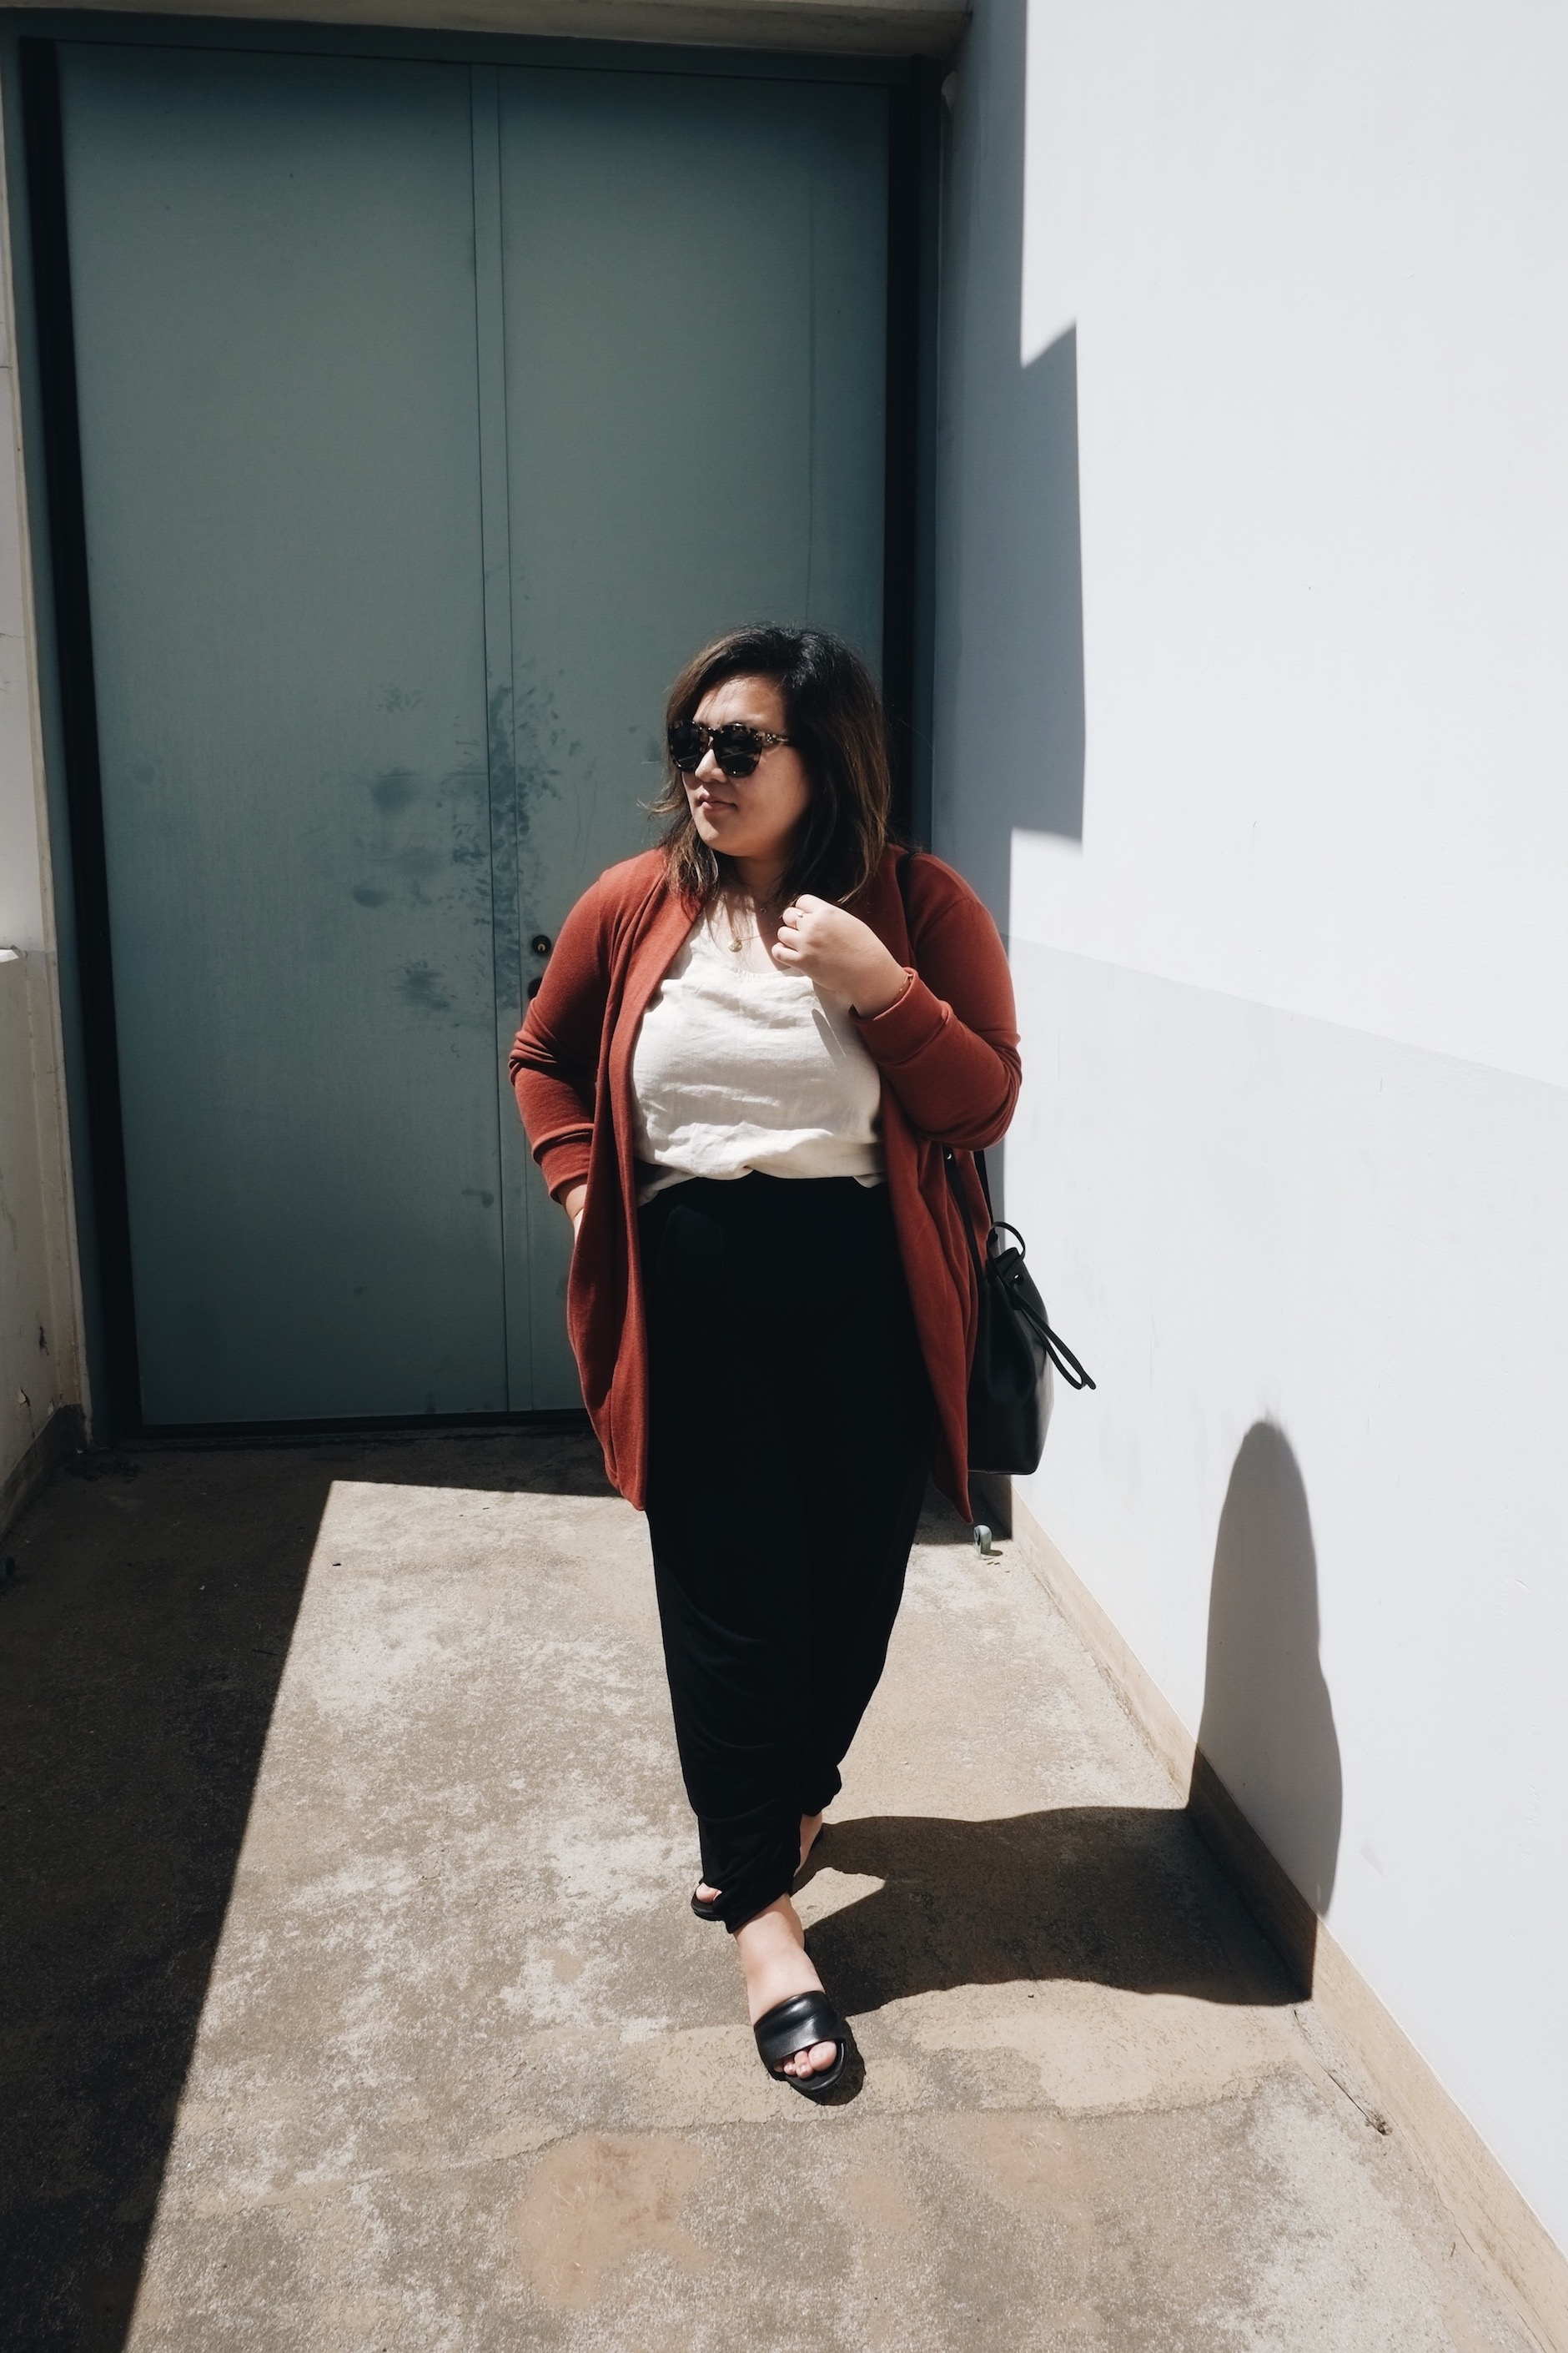 Minimalist outfit with a pop of rust red // A Week Of Minimalist Uniform Outfits With Jasmine Hwang From The Pleb Life on The Good Trade